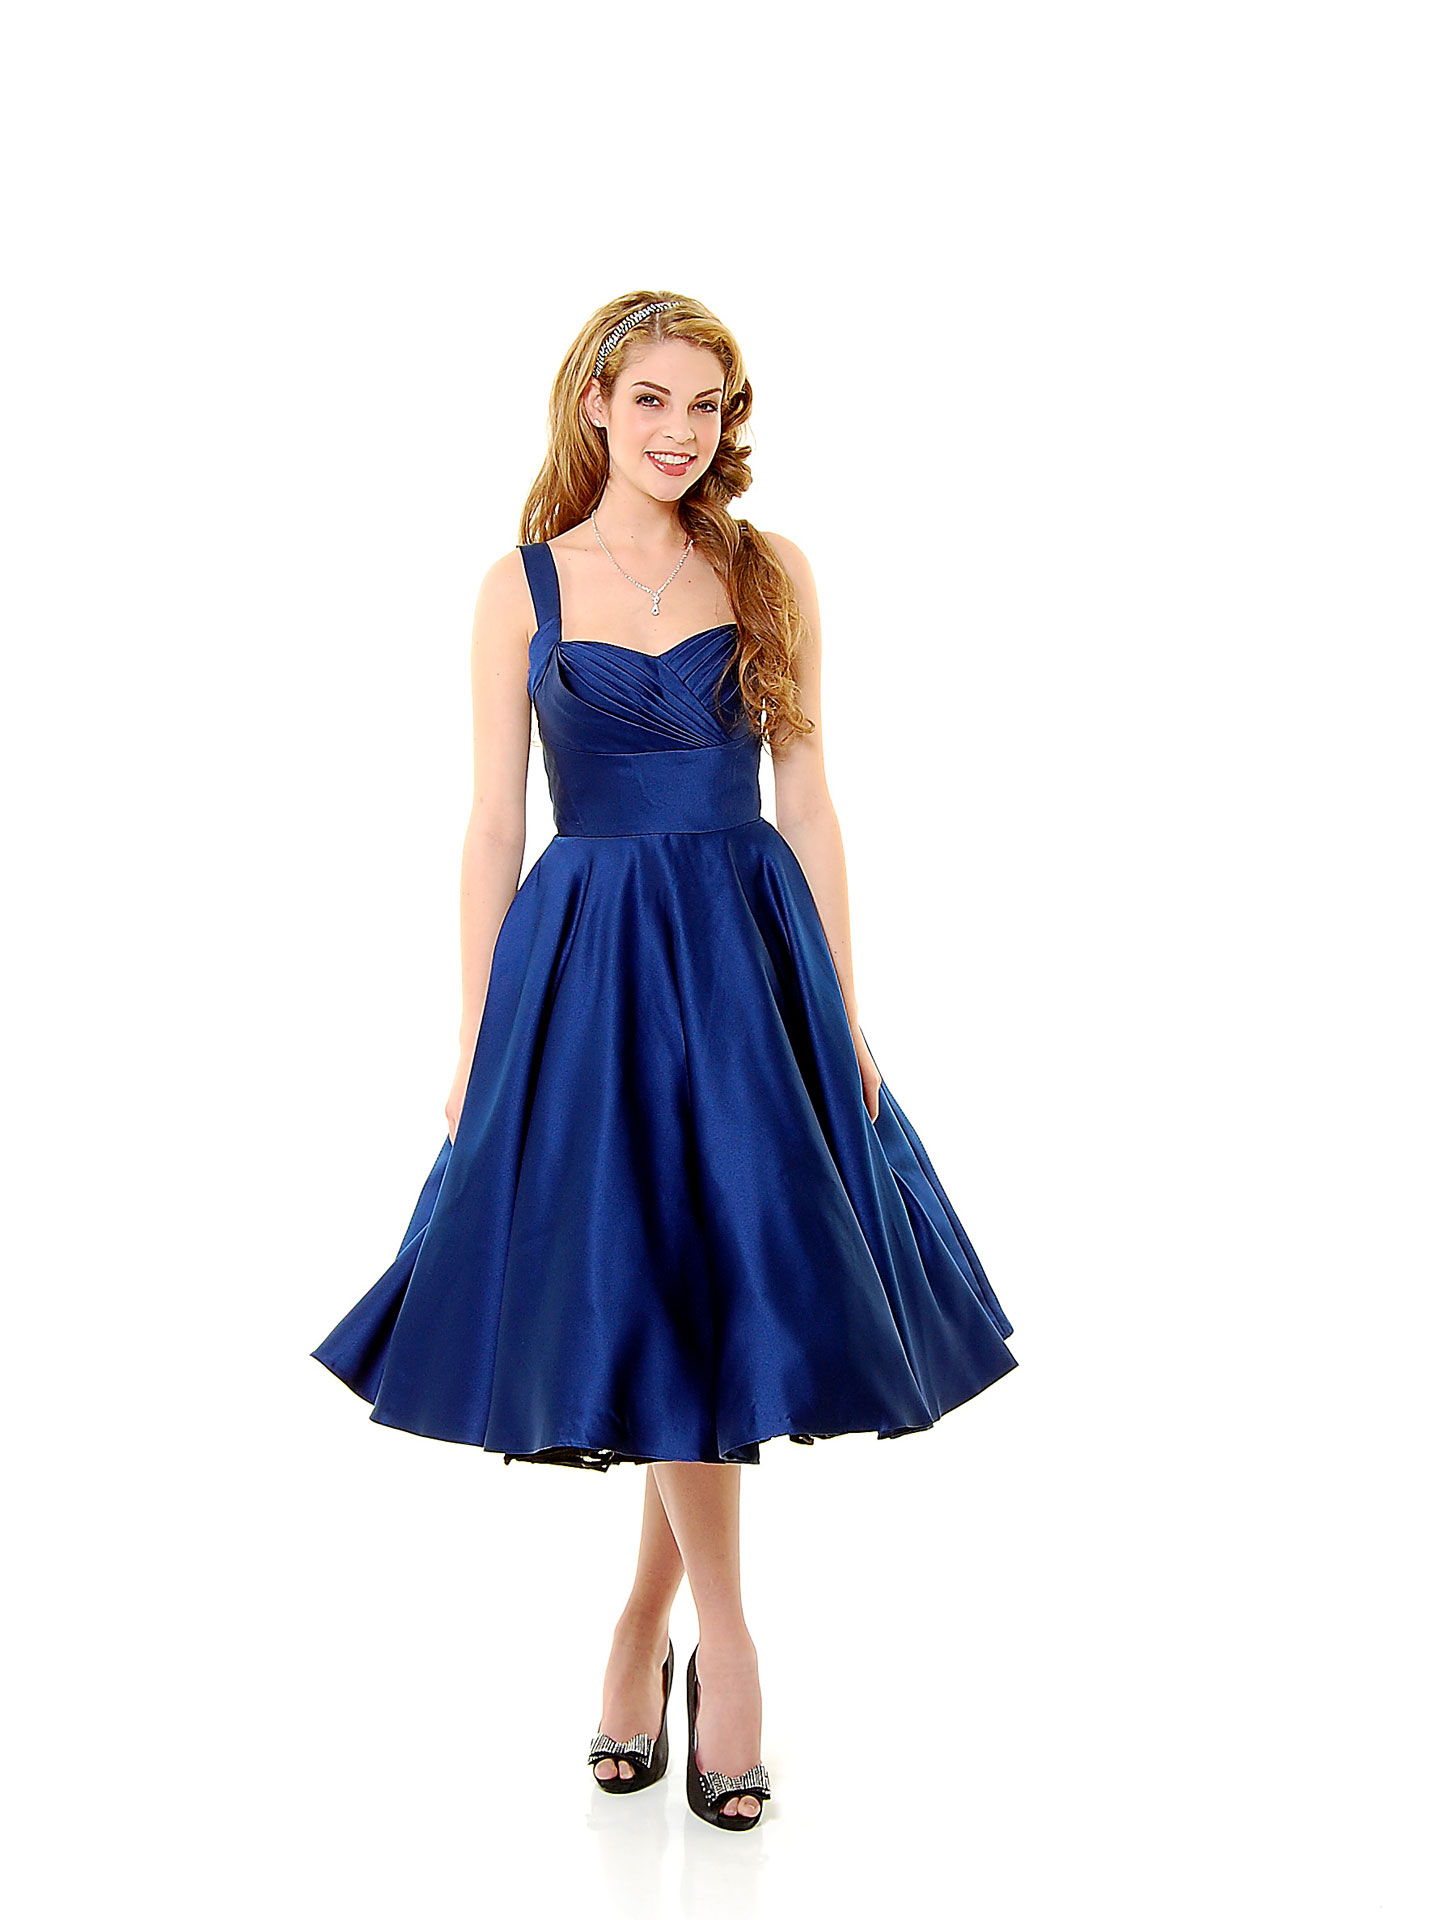 Prom dress quiz what prom dress is right for you quiz Find my fashion style quiz